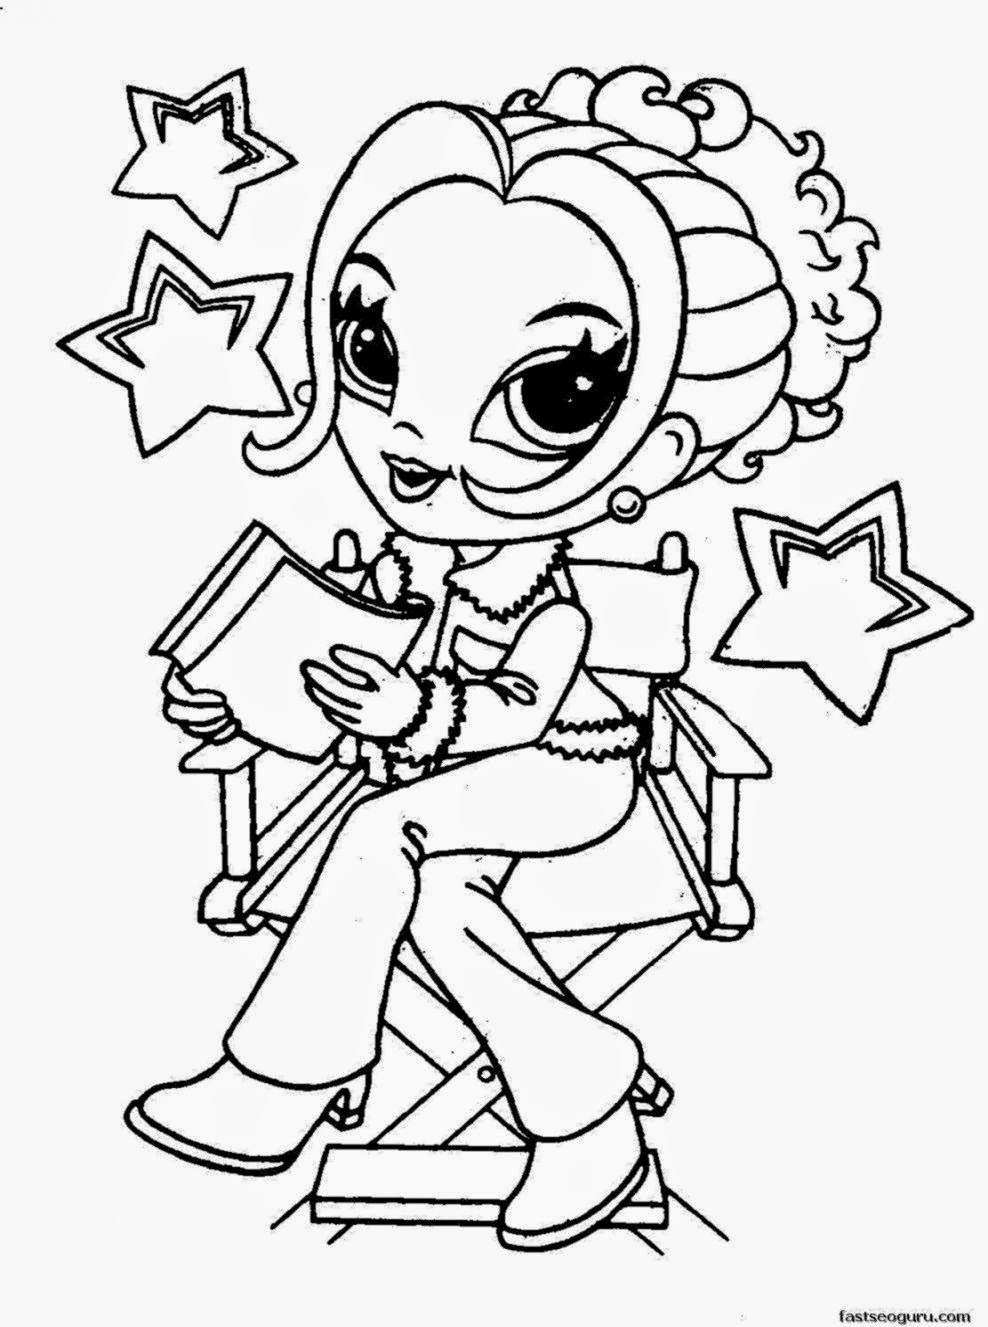 coloring pages for girls to print  Coloringpages4kid